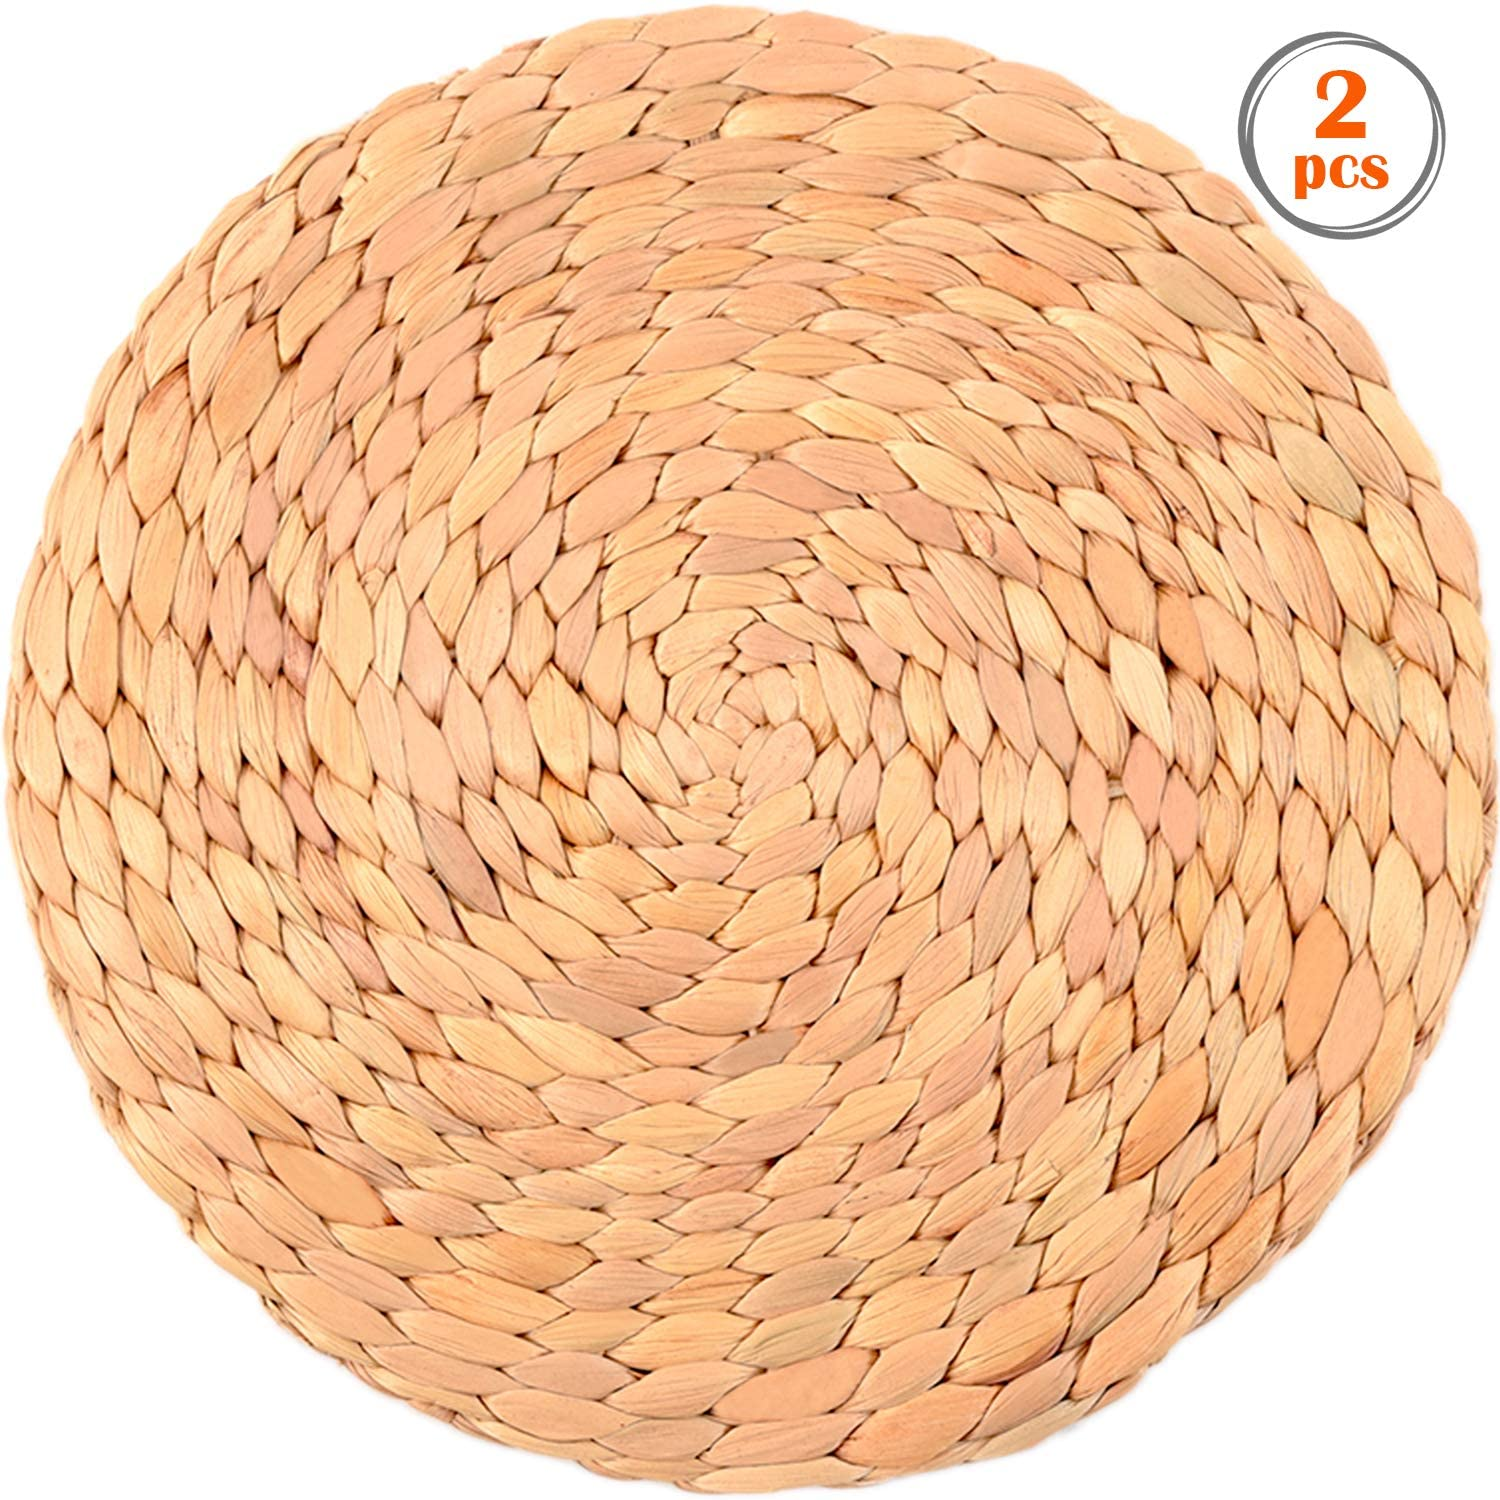 Water Hyacinth Woven Placemats, Placemats for Dining Table Waterproof, Round Placemats for Dining Table, Wicker Dining Table, Place Mats for Round Tables, Placemats for Dining Table Set of 2, 11.8